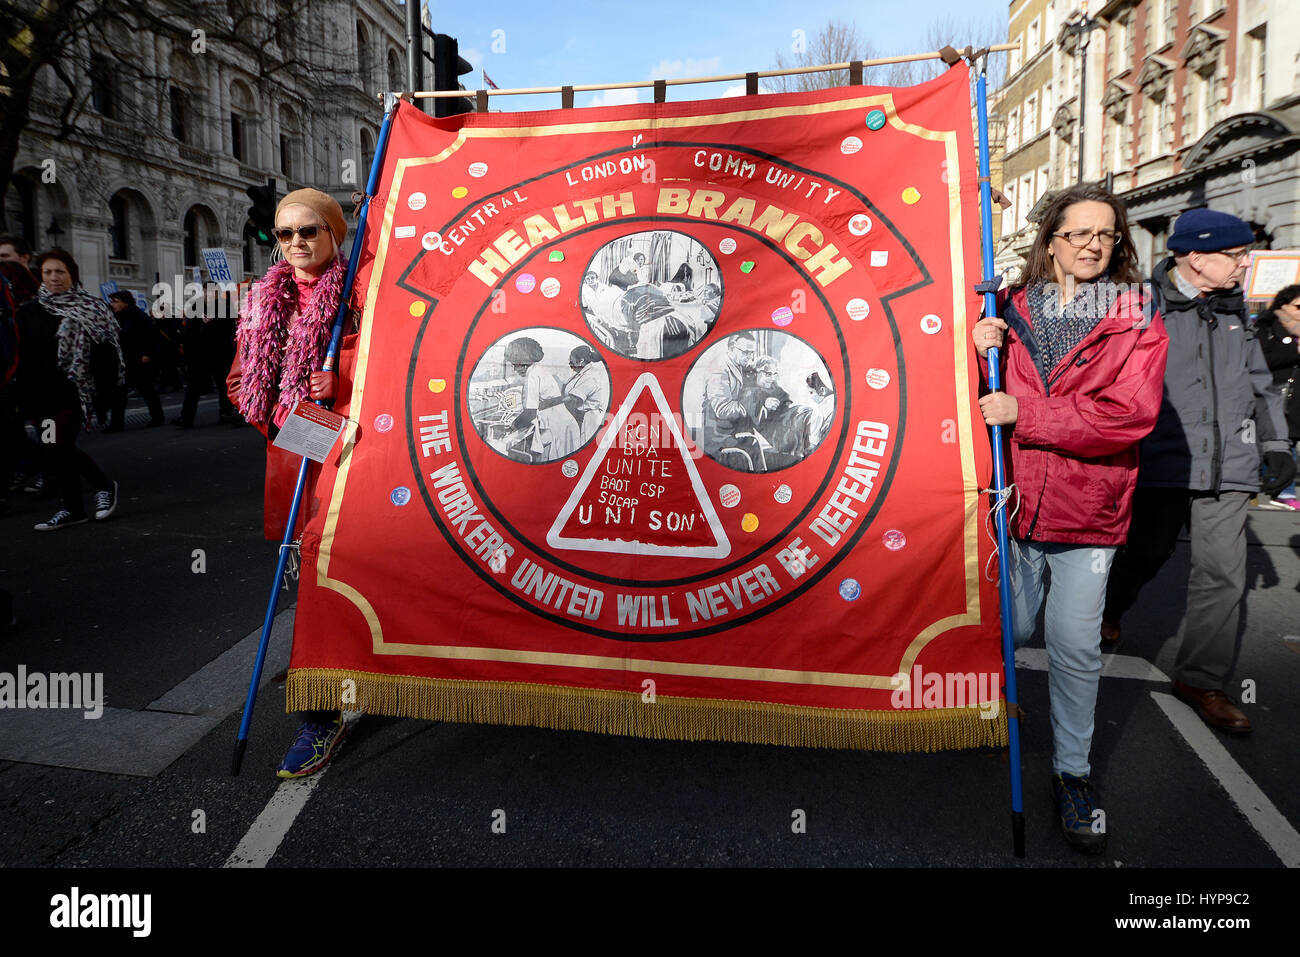 central-london-community-health-branch-banner-with-the-slogan-the-HYP9C2.jpg